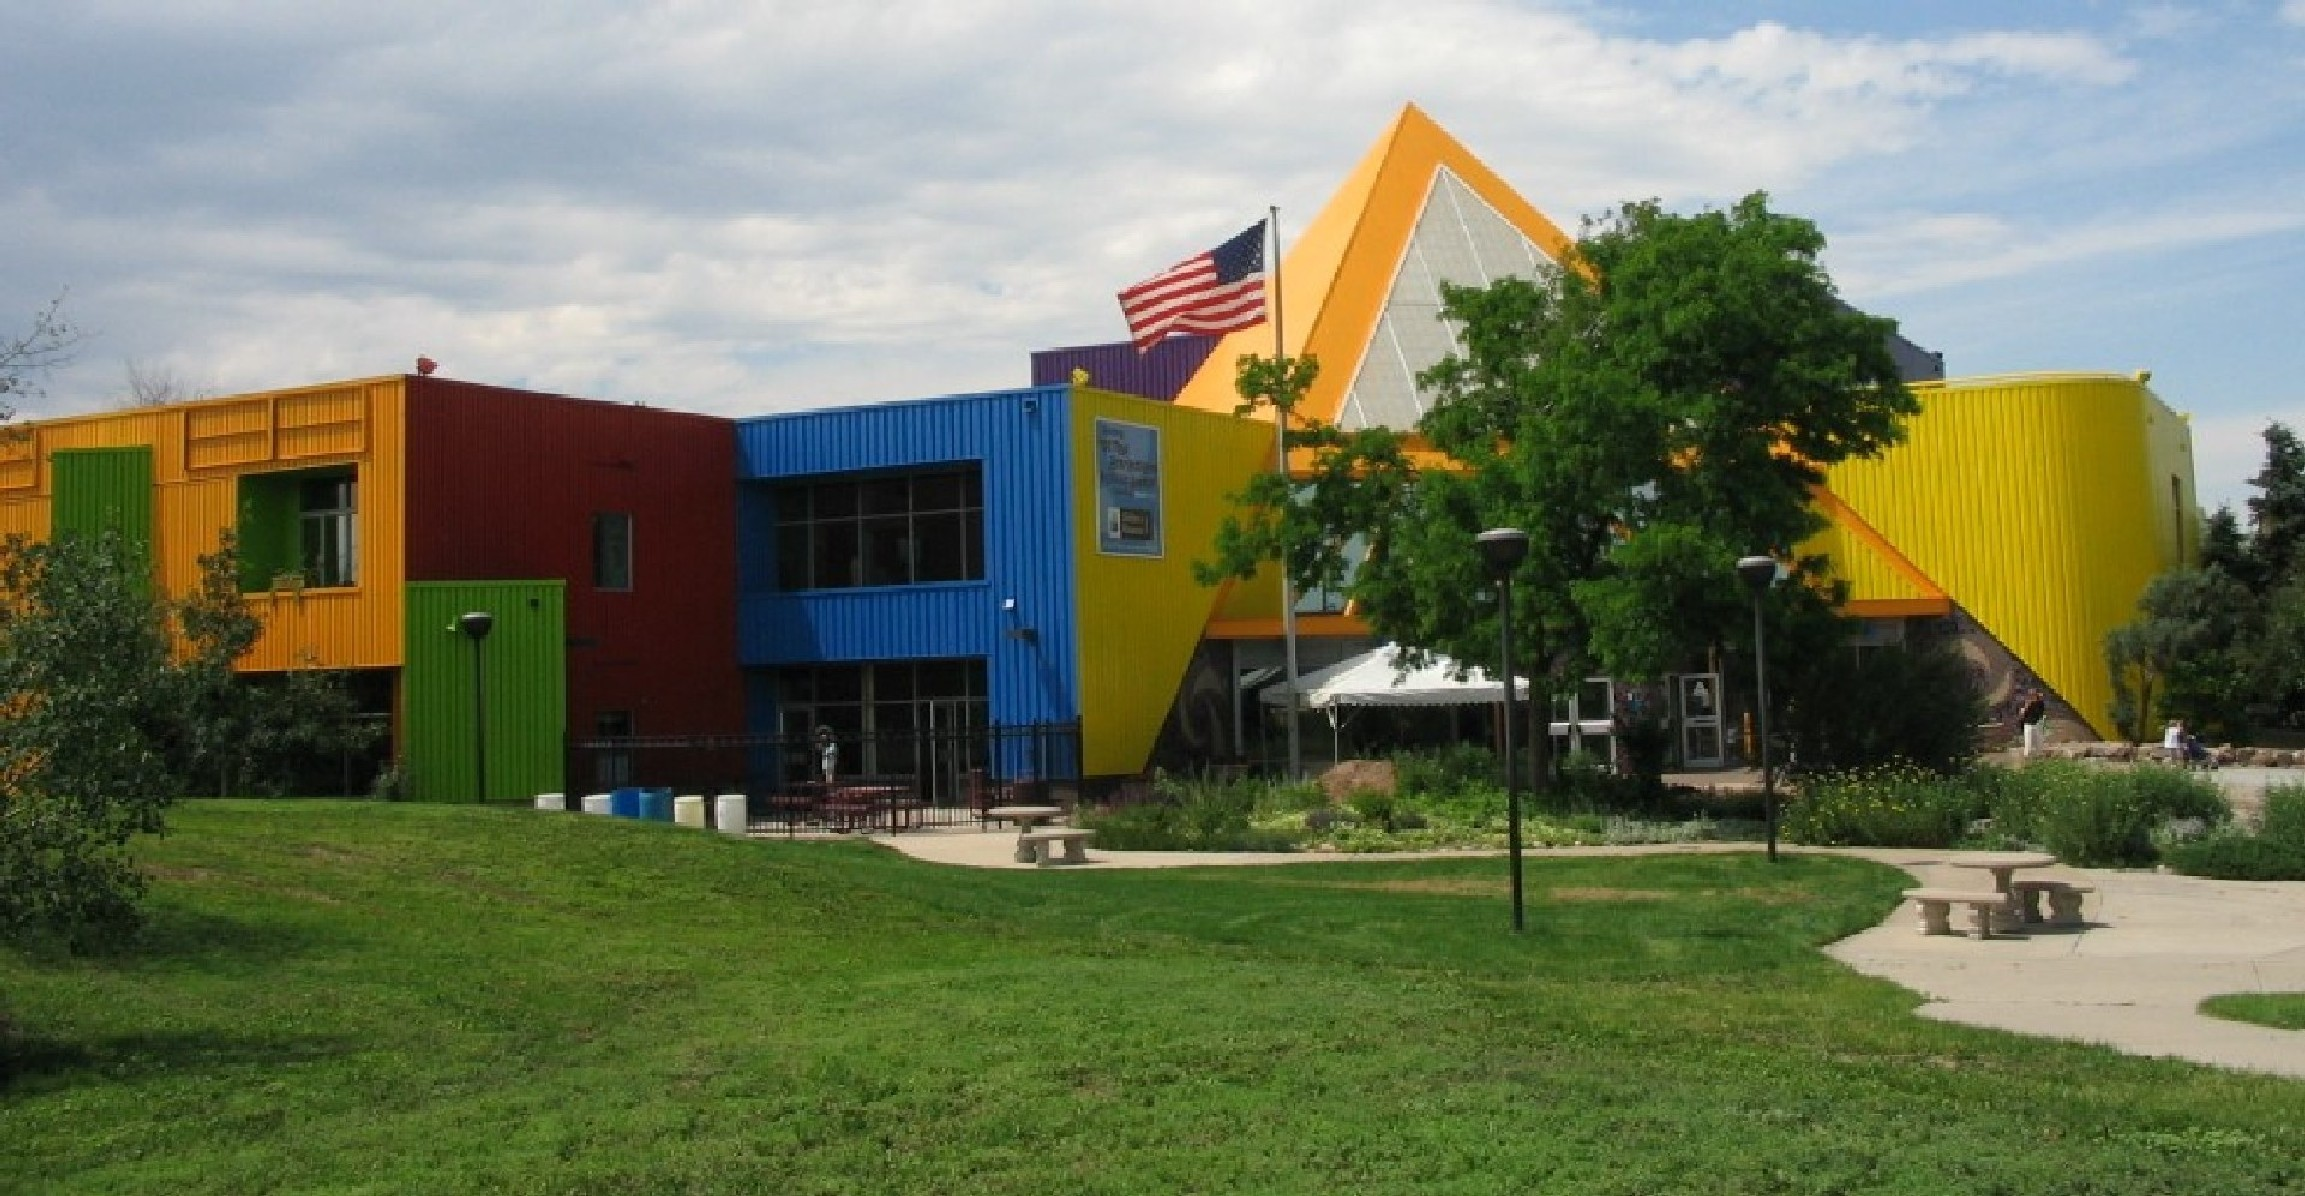 Children's Museum of Denver (image from Wikimedia Commons)